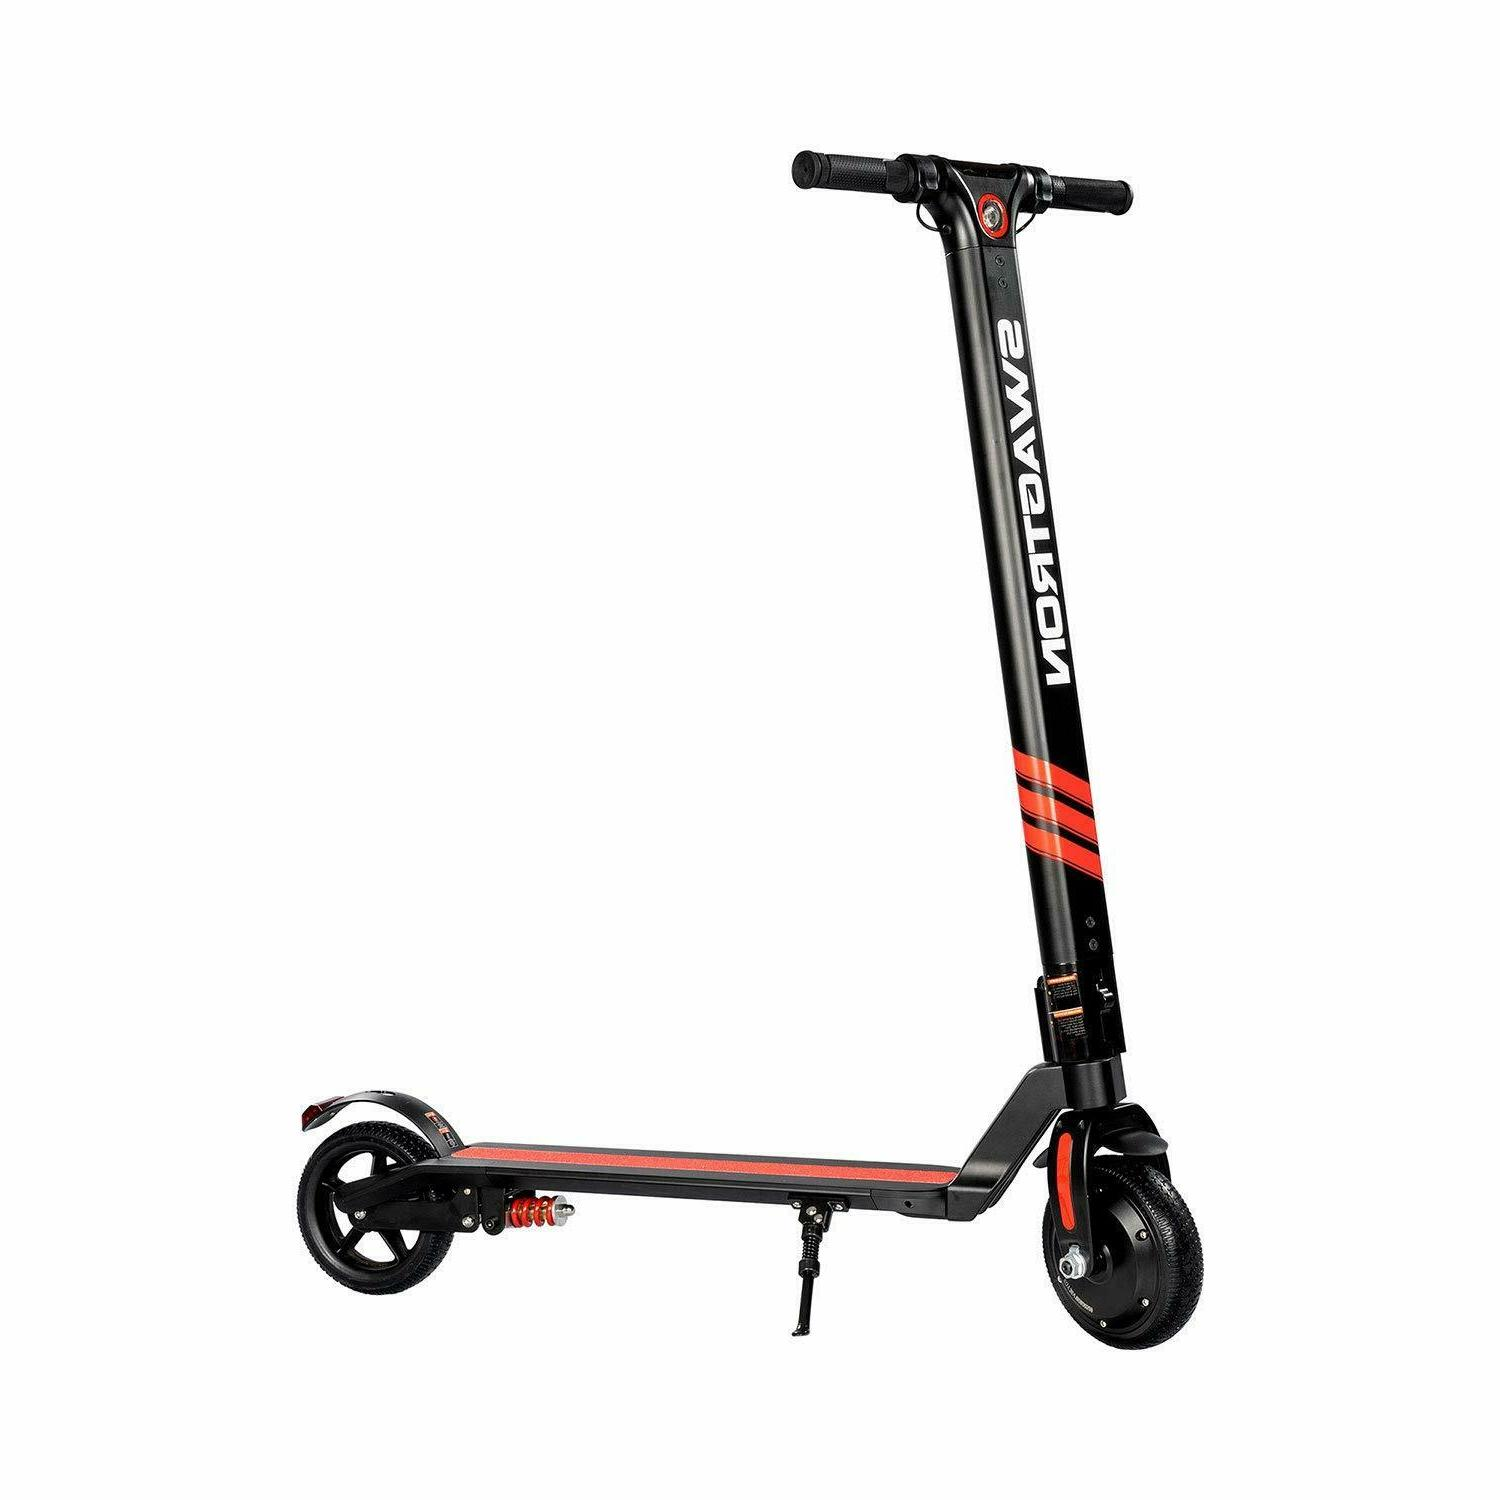 swagger sg 3 pro foldable electric scooter